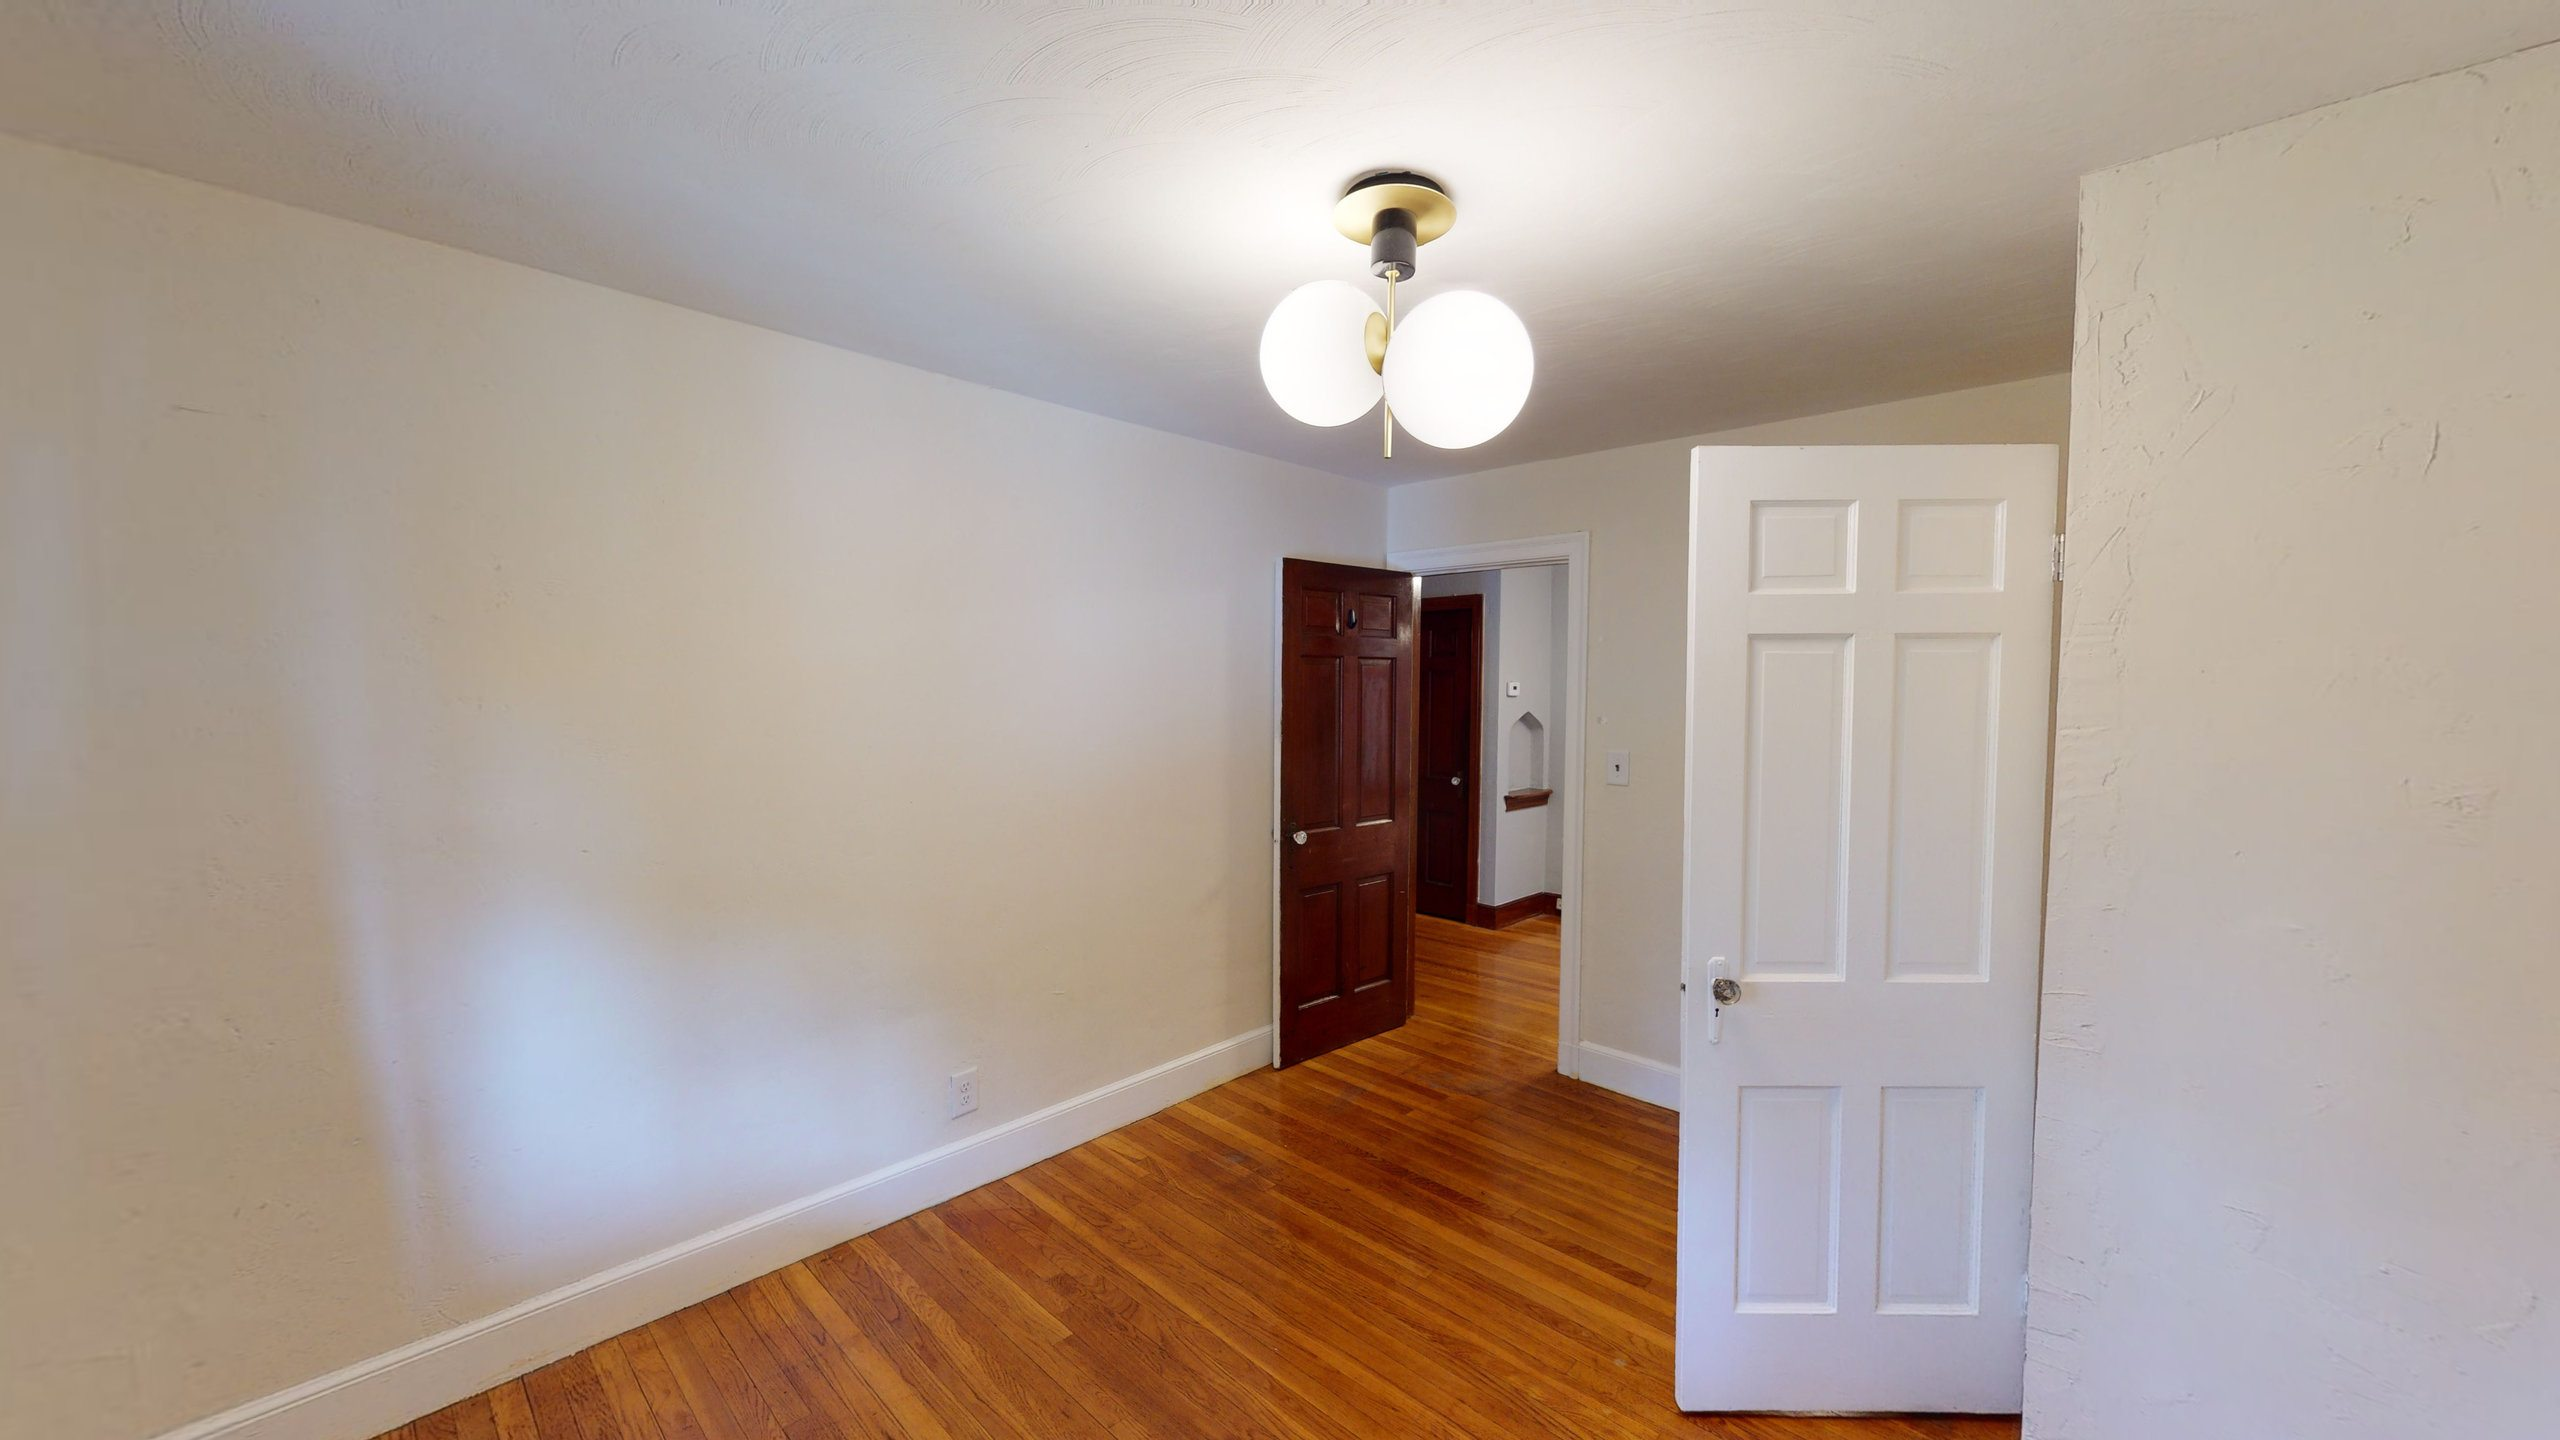 Photo of Full Room 1B (can be furnished or unfurnished) room June Homes